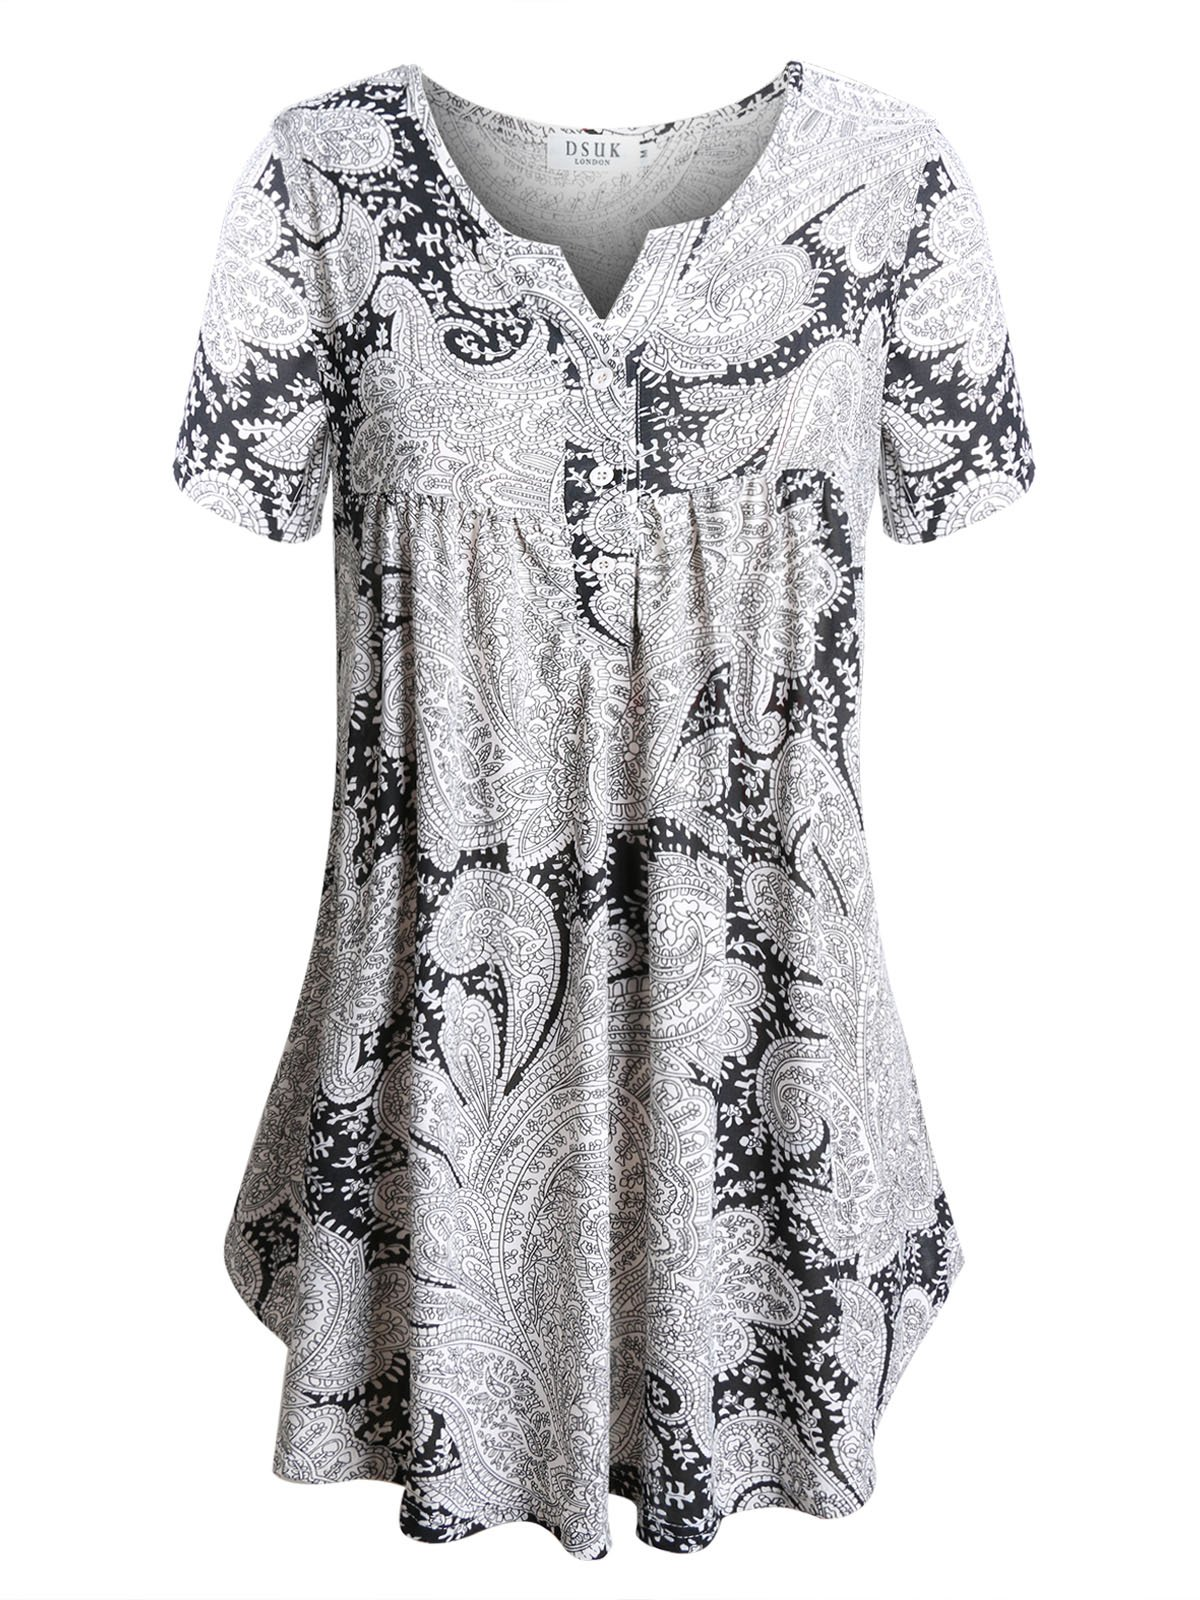 Floral Print Tunic,DSUK Women's Crewneck Aline Hem Long Style Button-down Big Flowy Trendy Elegant Cosy Pleats Gorgeous Snugly Blouse Knitted Shirts for Perfect Daytime Look Black and White Large